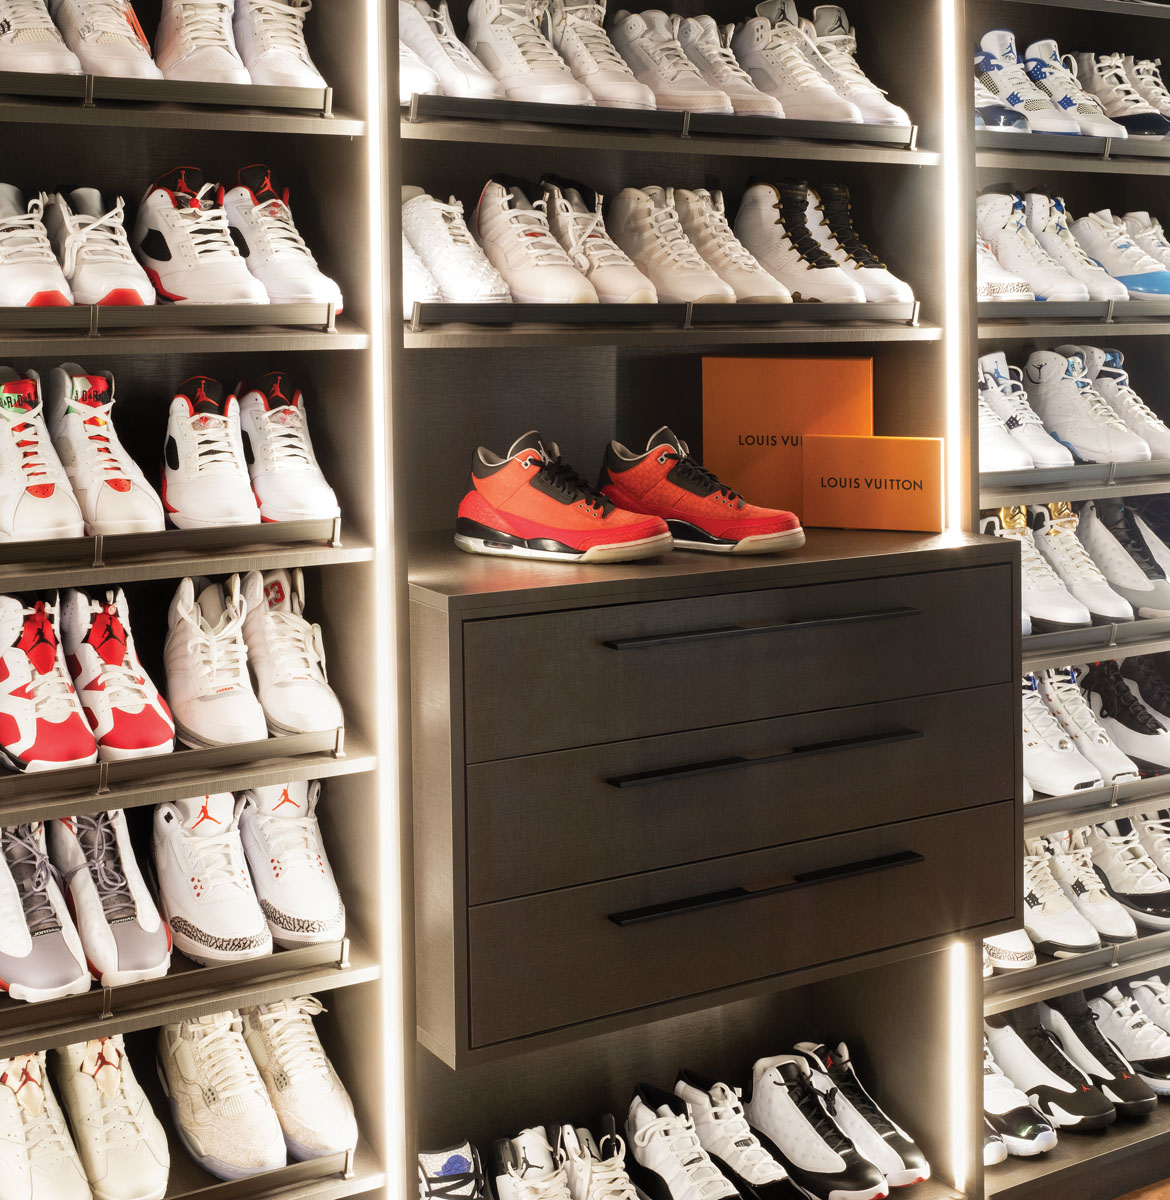 From the glass-encased pairs in the office to this custom closet, sneakerheads can rejoice in the care taken to display the homeowner's impressive collection of athletic shoes.